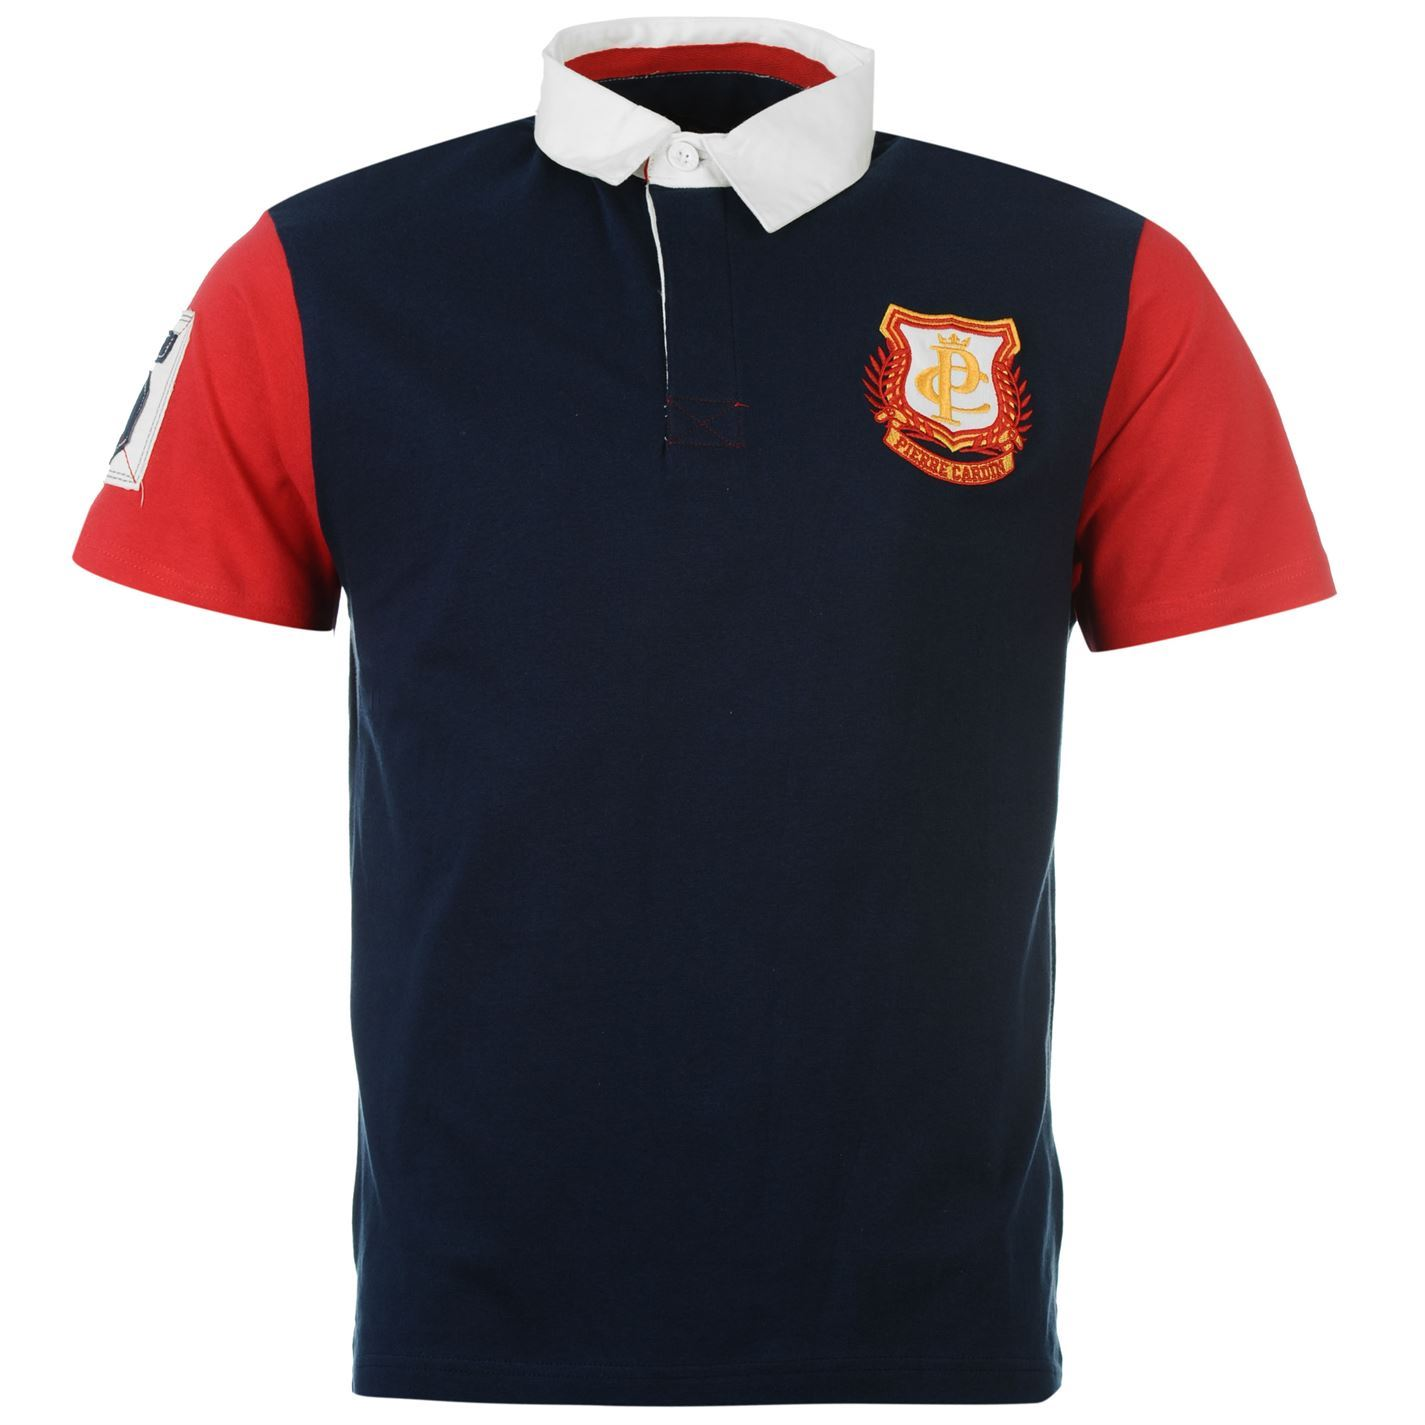 Pierre Cardin Mens Rugby Polo T Shirt Jersey Top Casual